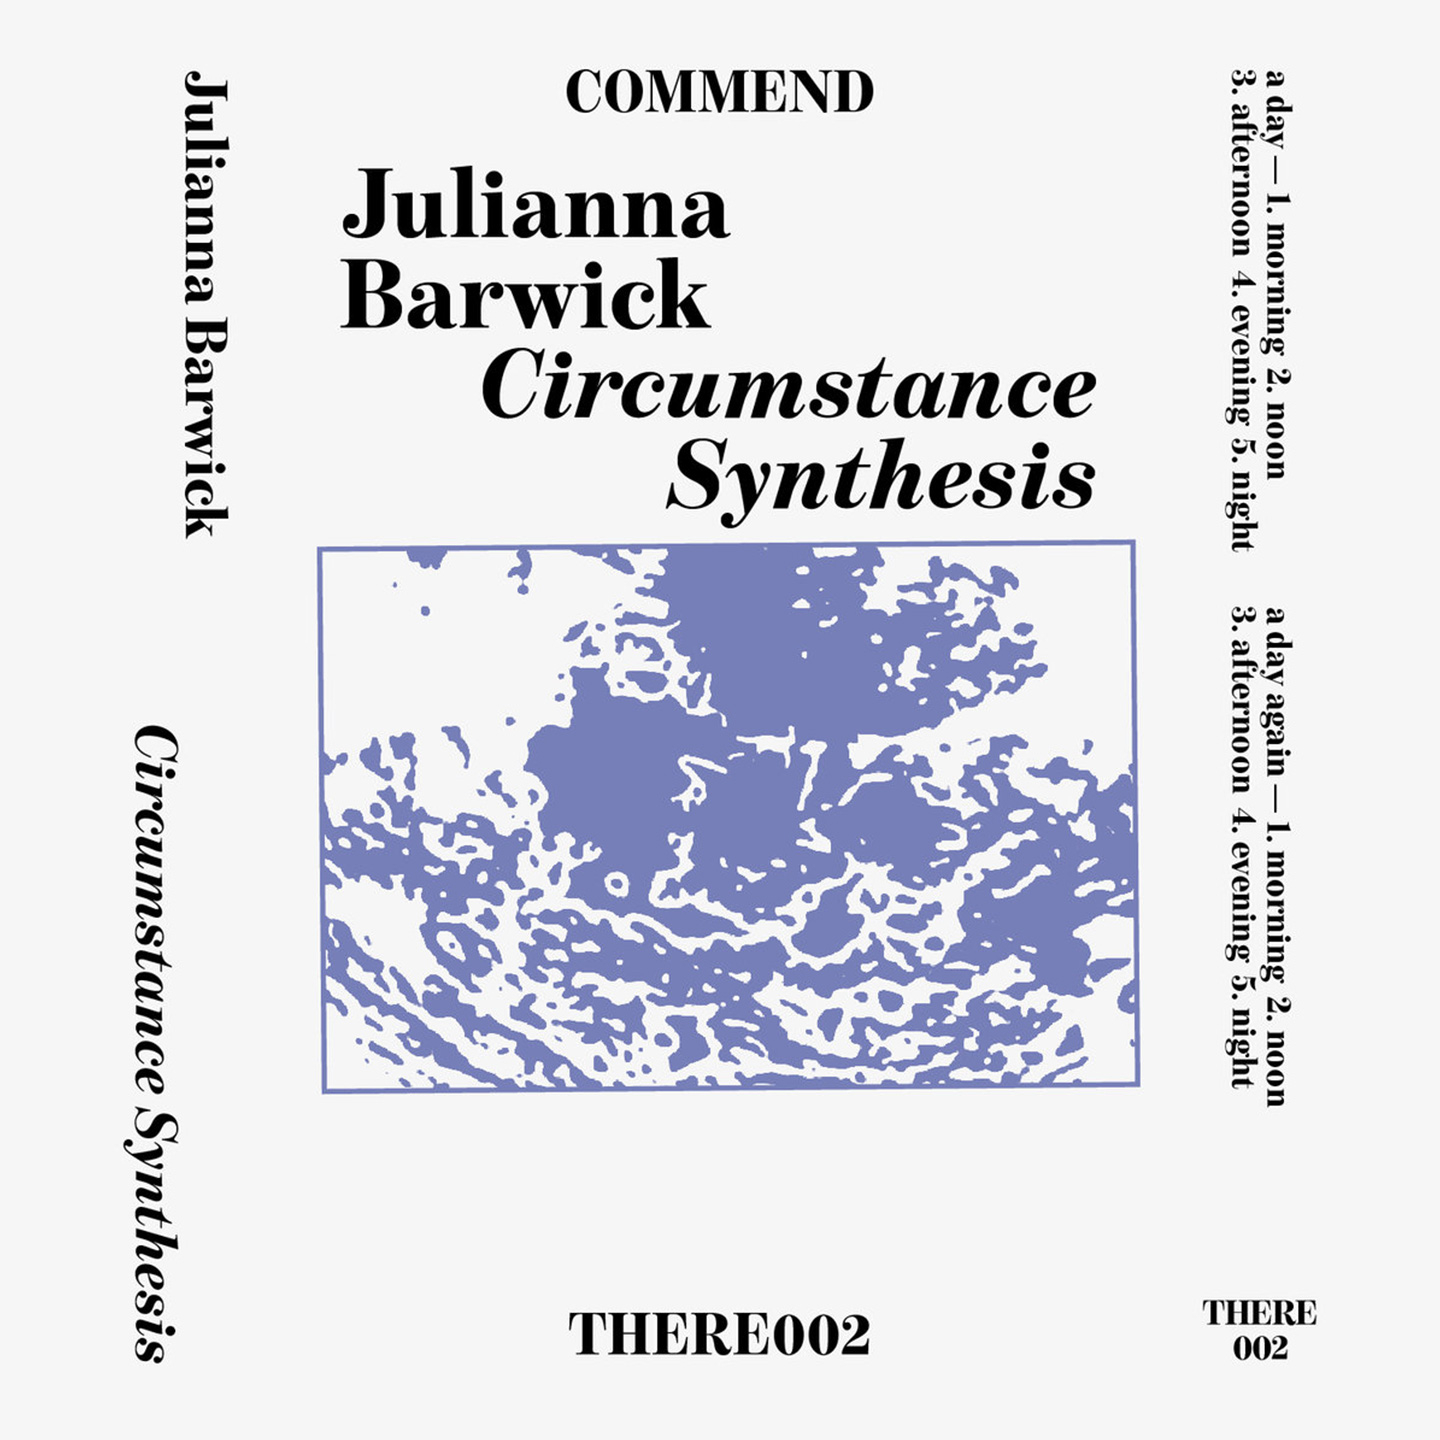 Julianna Barwick - Circumstance Synthesis